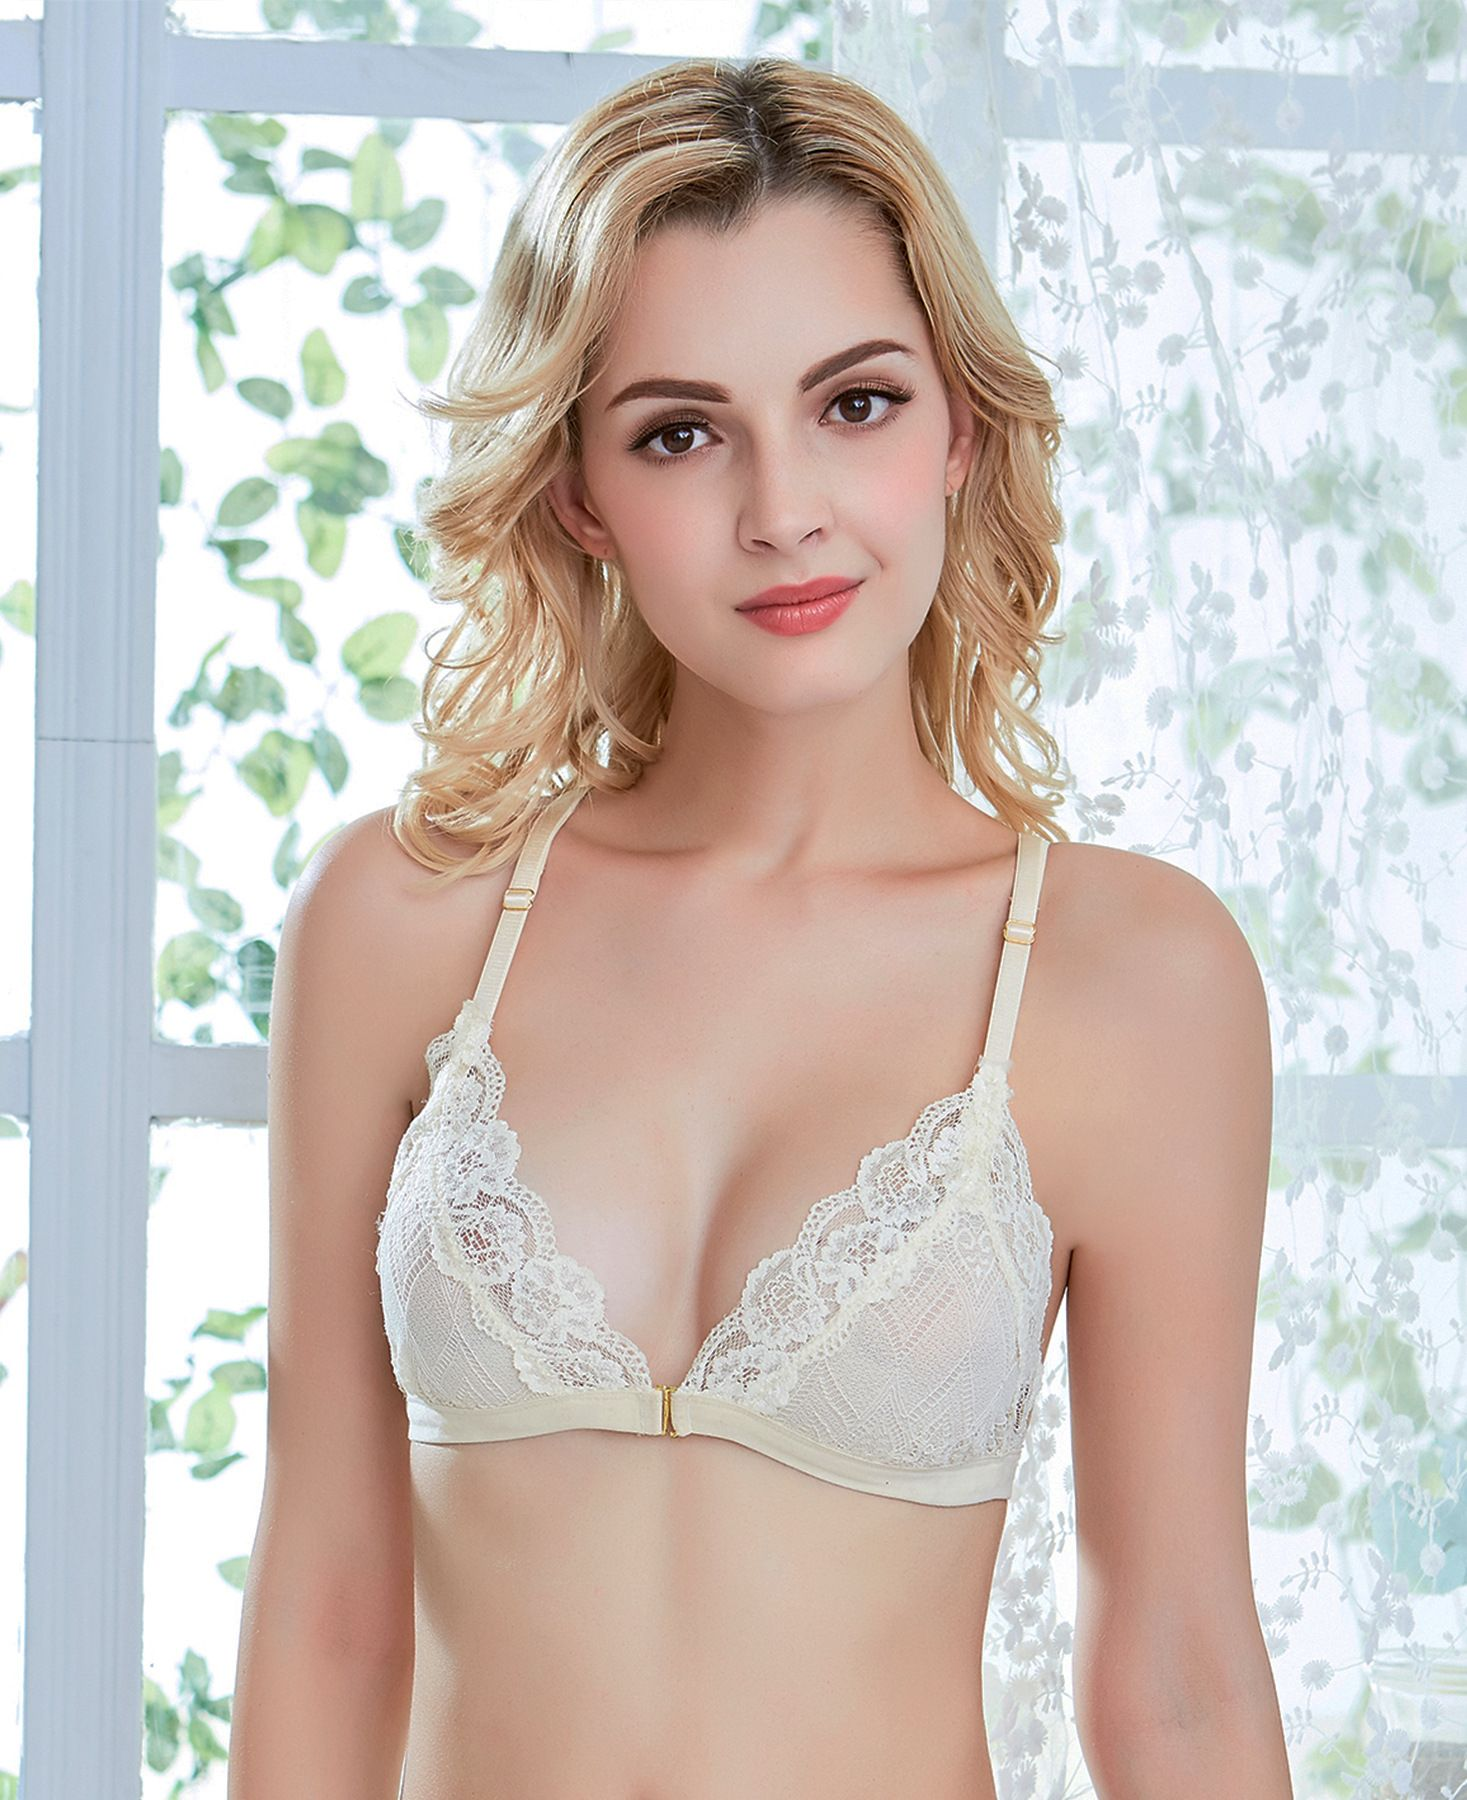 1b4f31990347 Shitagi Ultra-thin Transparent Foral Lace Bralette Hot Sexy Seamless Bra  Women V-neck Wirefree Front Closure Lady Underwear